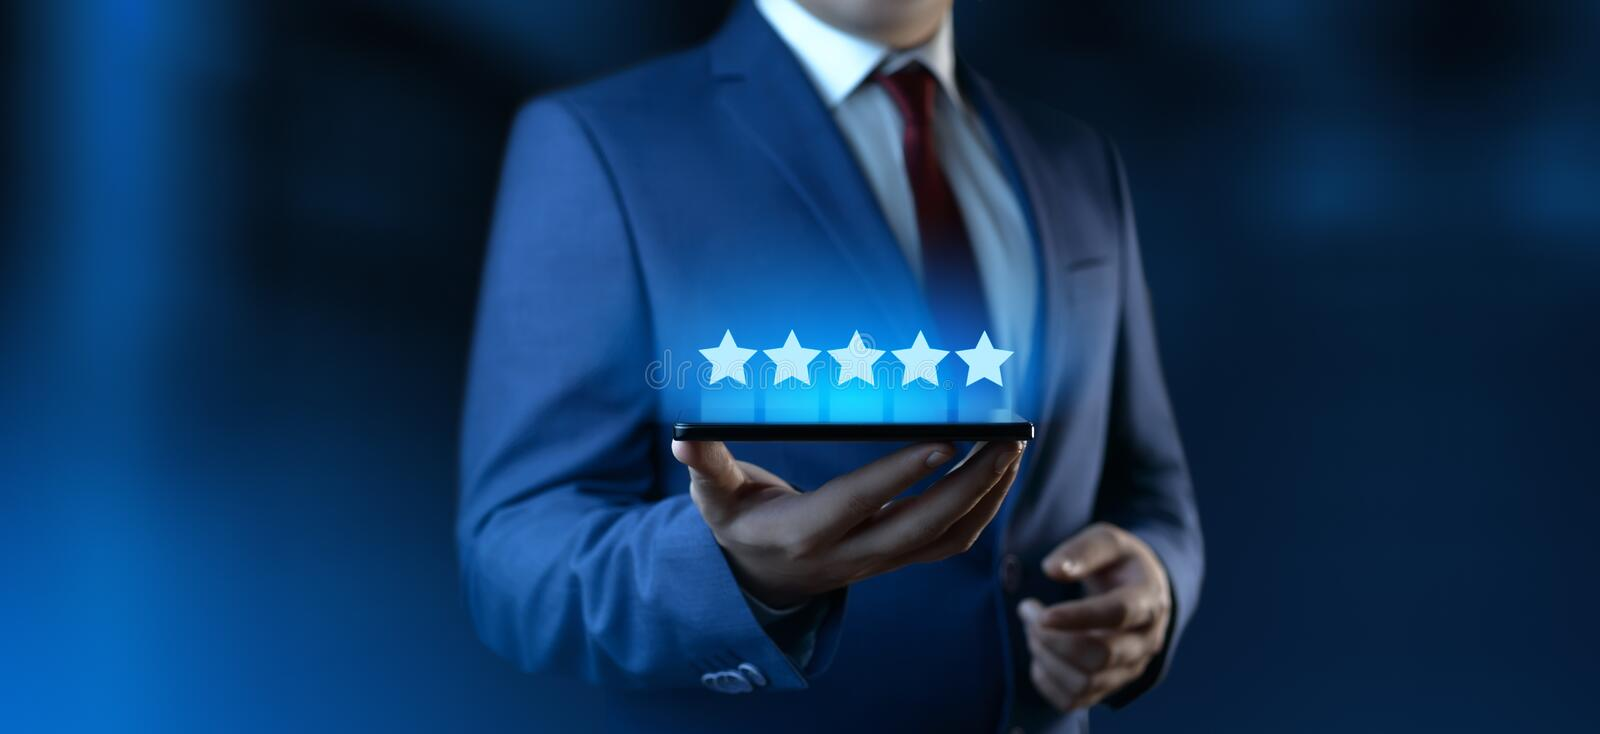 5 Five Stars Rating Quality Review Best Service Business Internet Marketing Concept royalty free stock photography